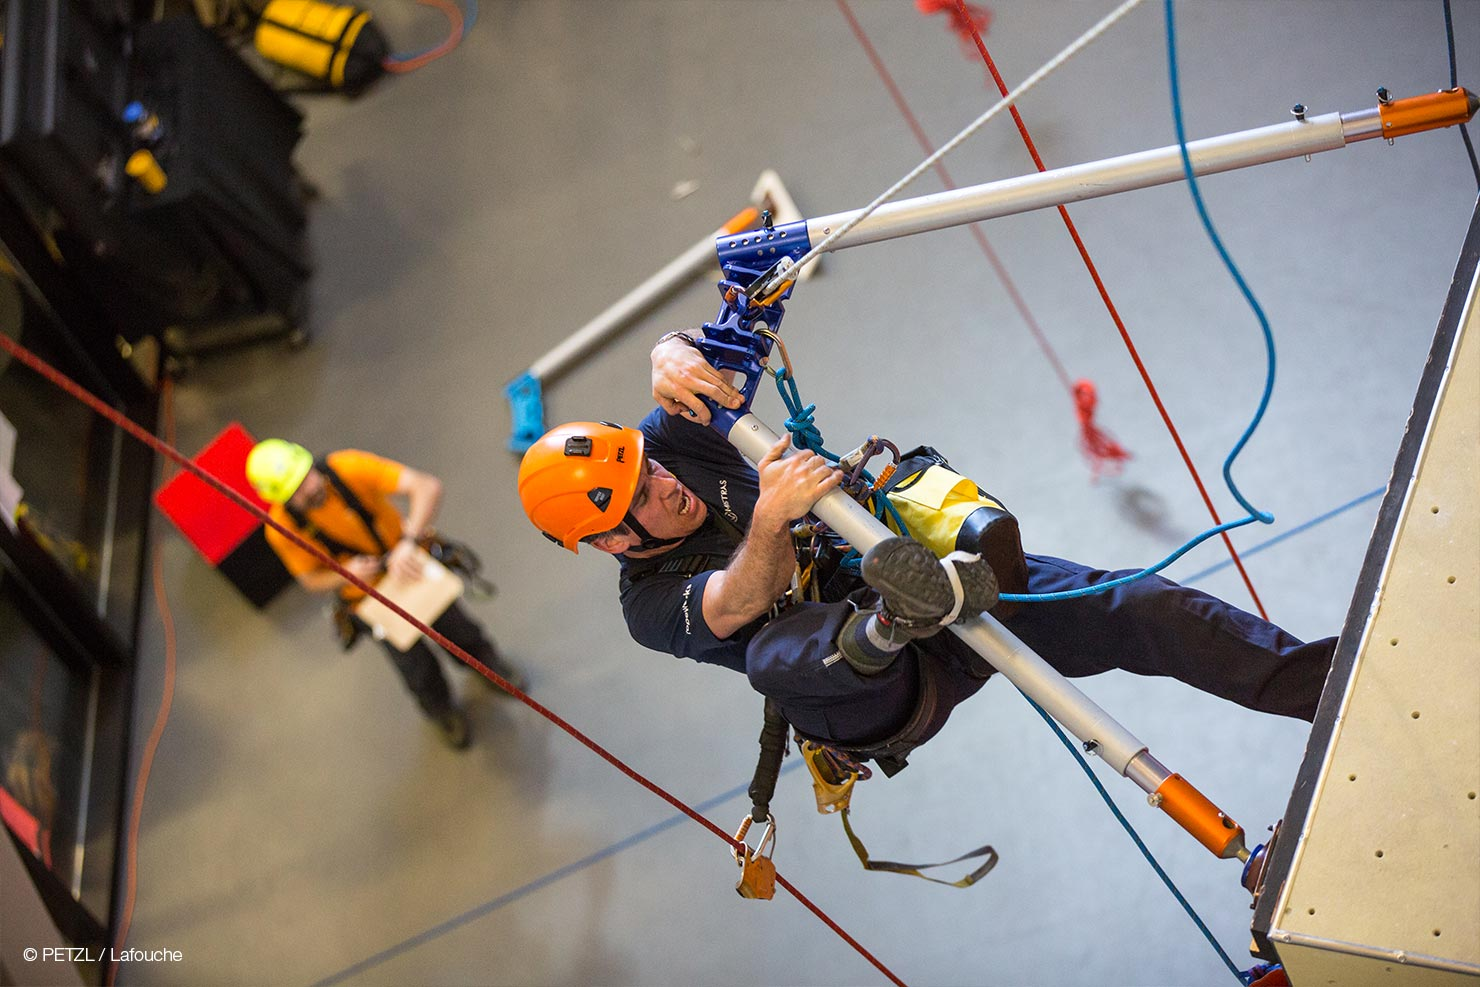 Petzl RopeTrip 2016, Salt Lake City - USA © Lafouche